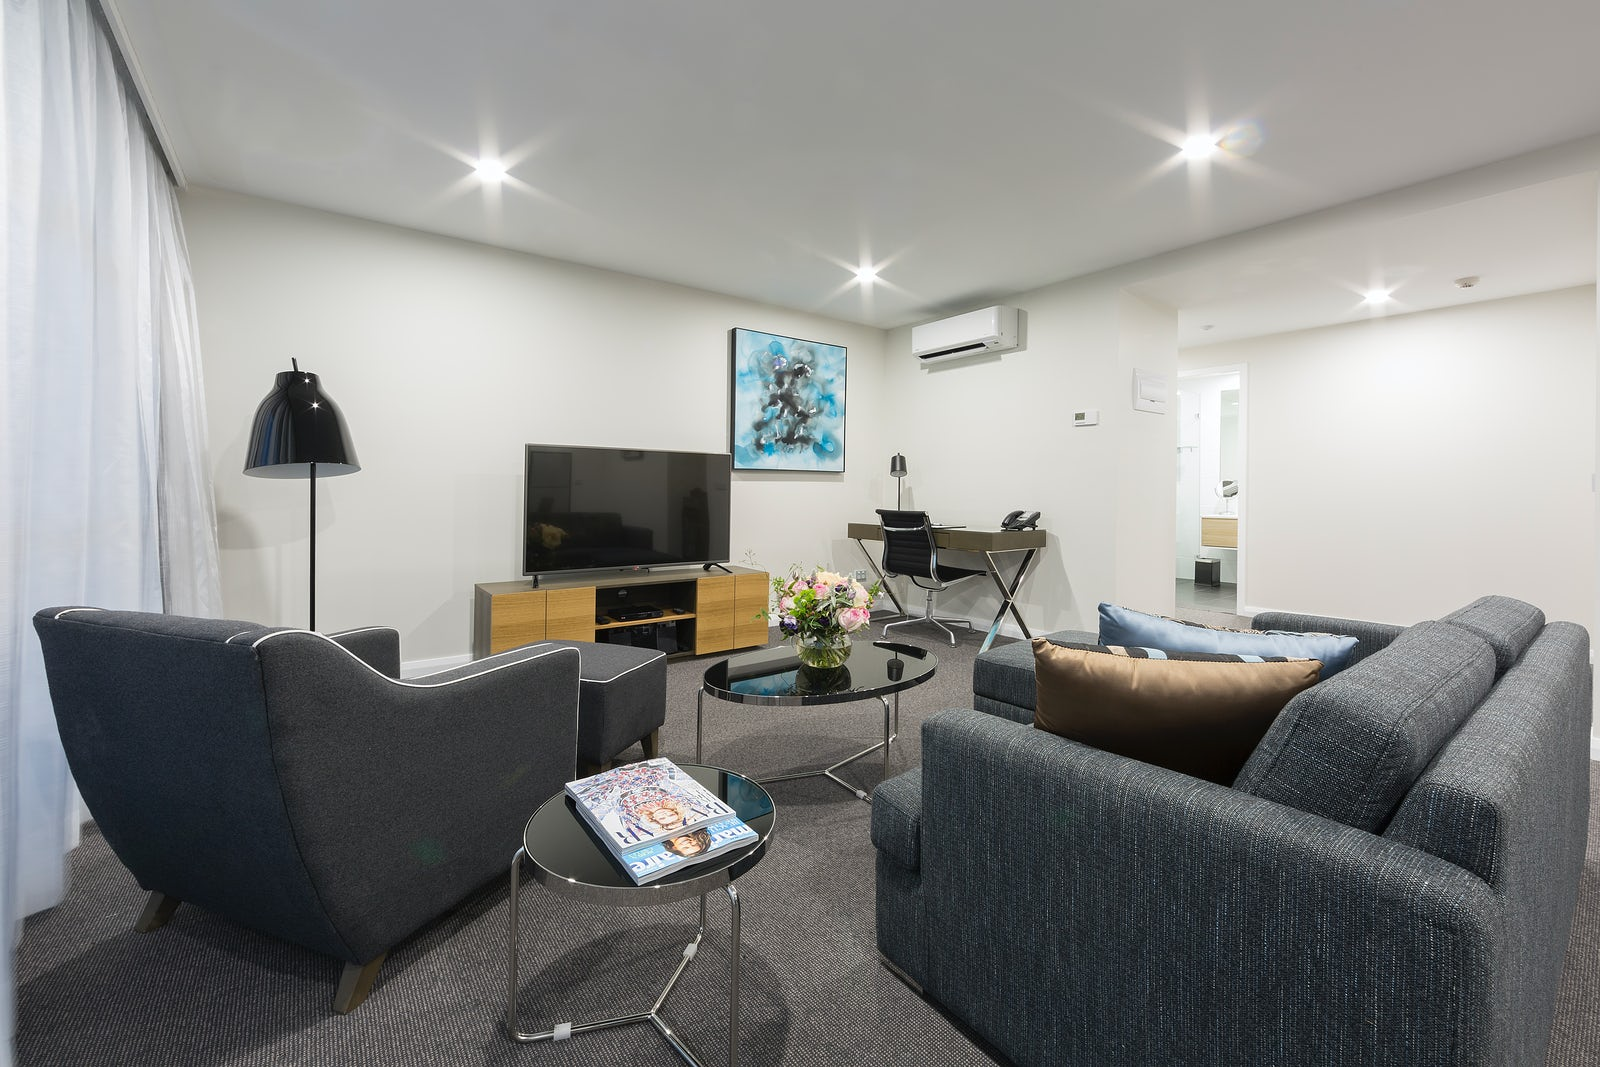 2 Bedroom Apartment Canberra